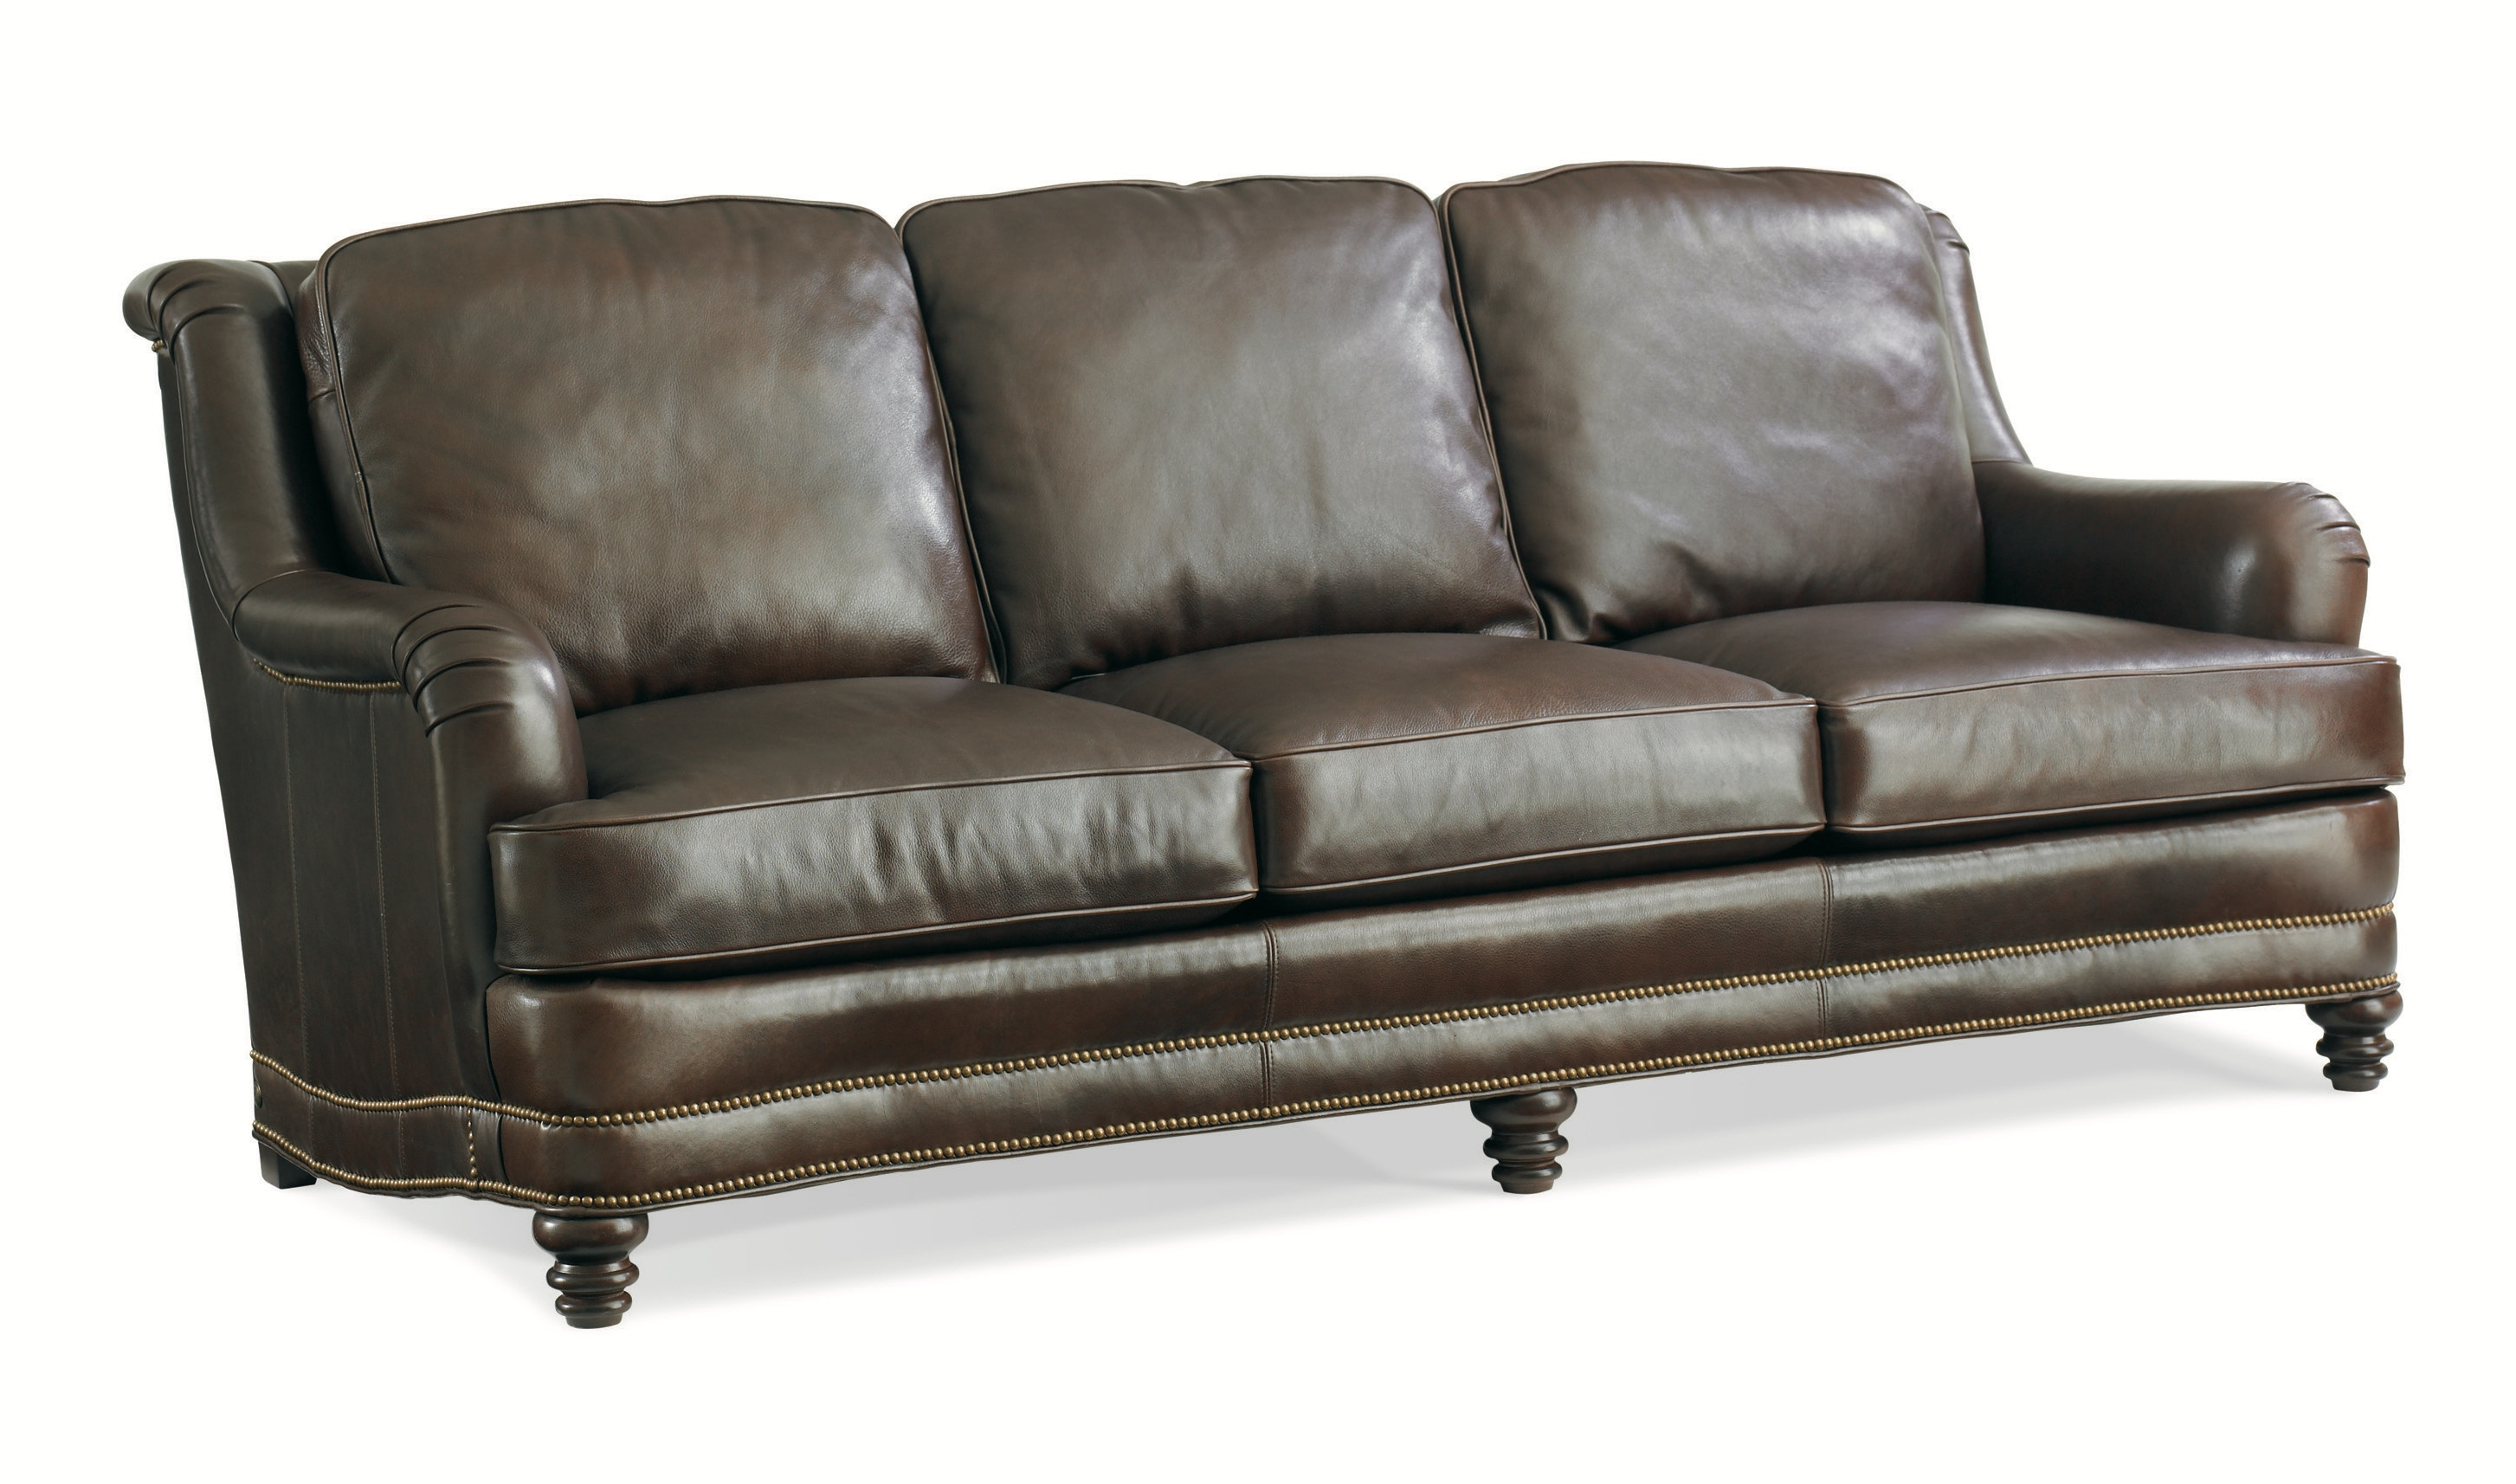 Whittemore Sherrill Furniture Three Cushion Leather Sofa Artisan Sofa